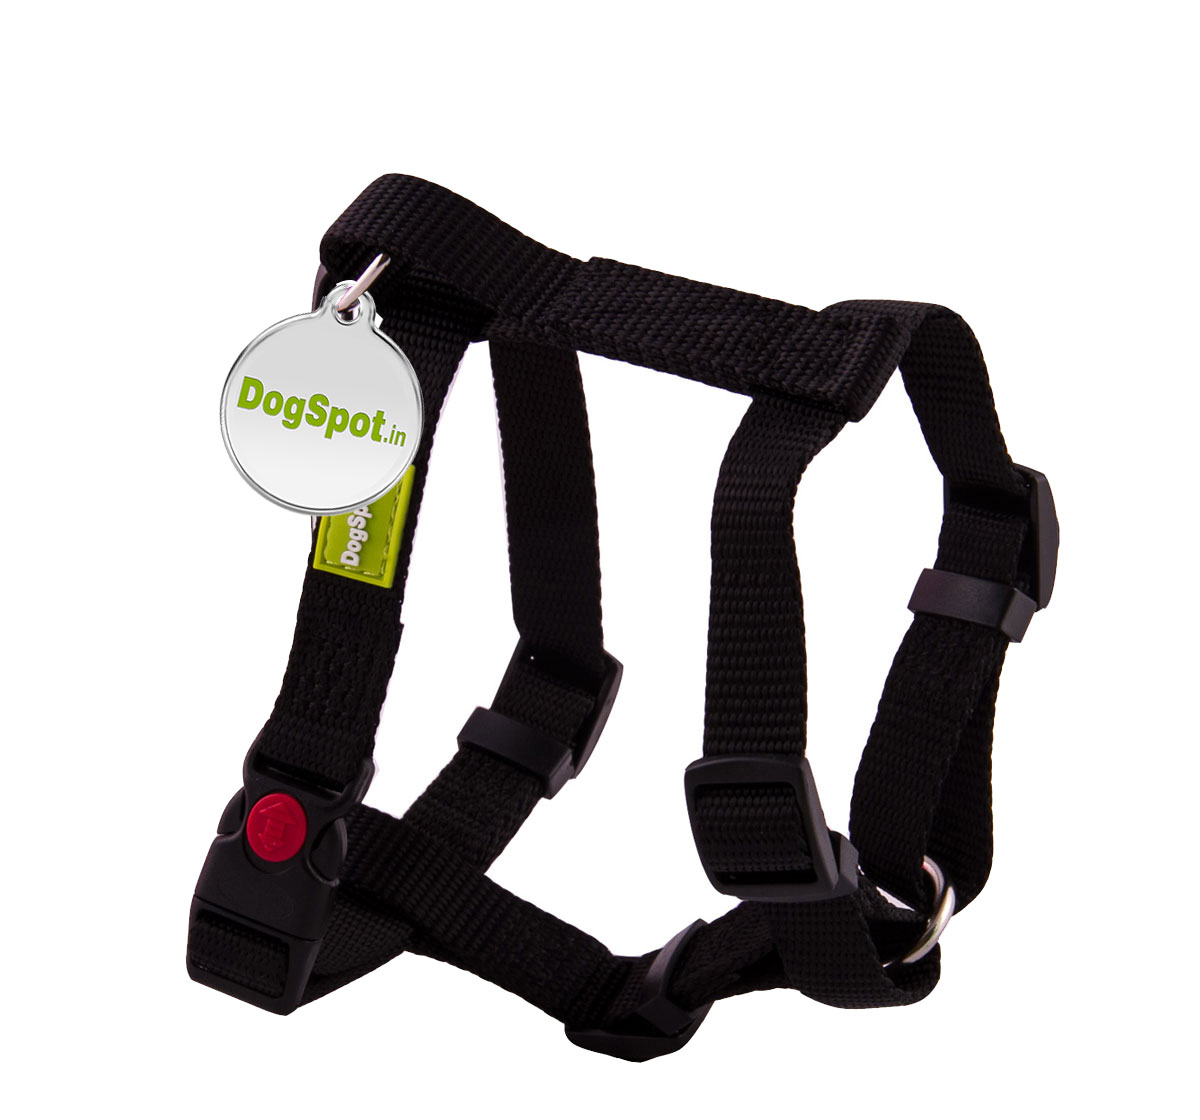 DogSpot Premium Harness Black - Large With Wag Tag